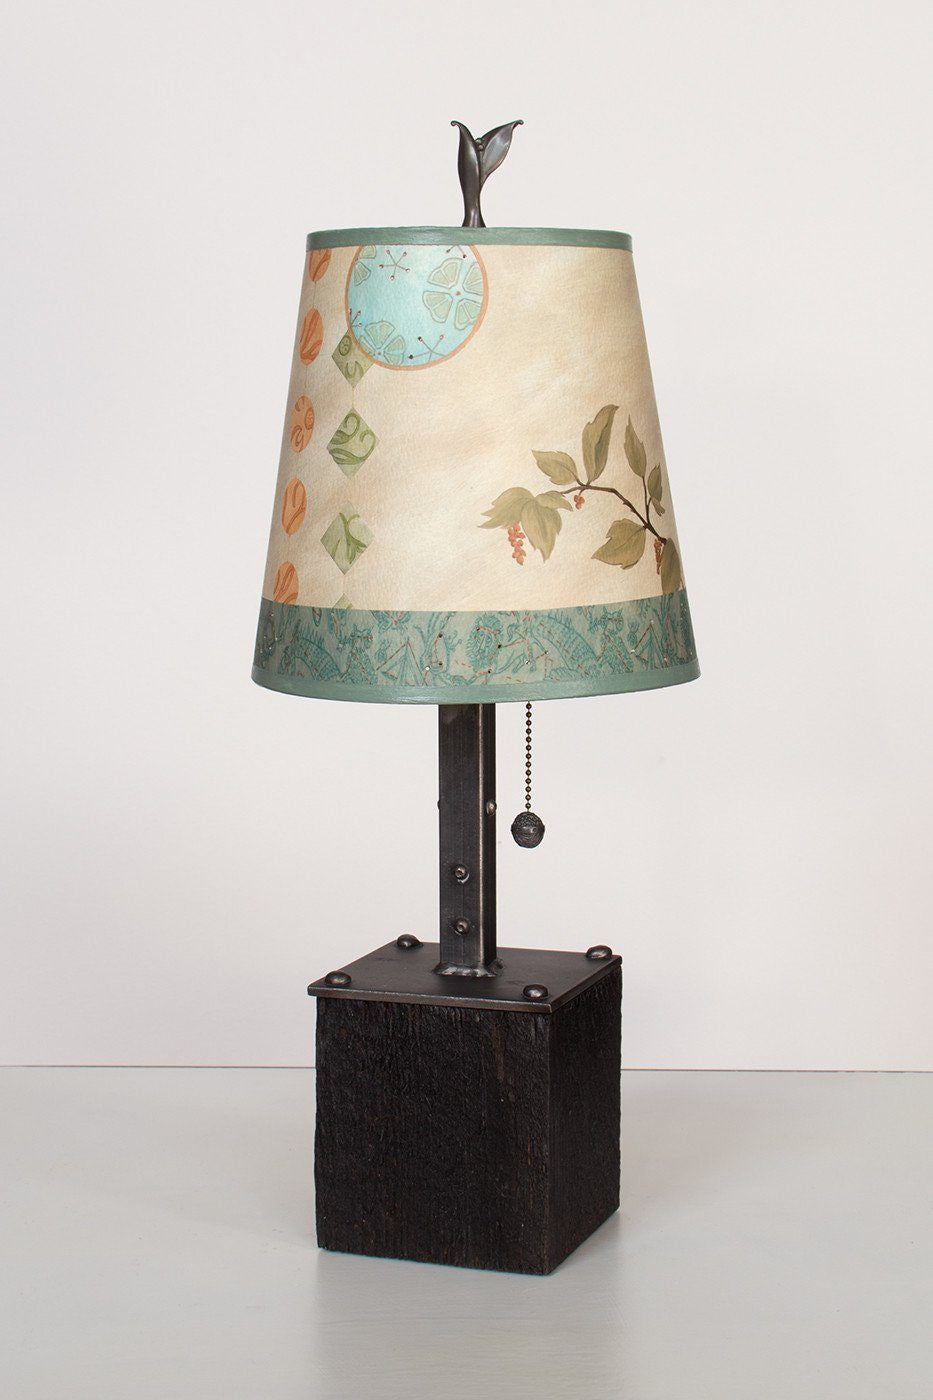 Steel Table Lamp on Reclaimed Wood with Small Drum Shade in Celestial Leaf Lit